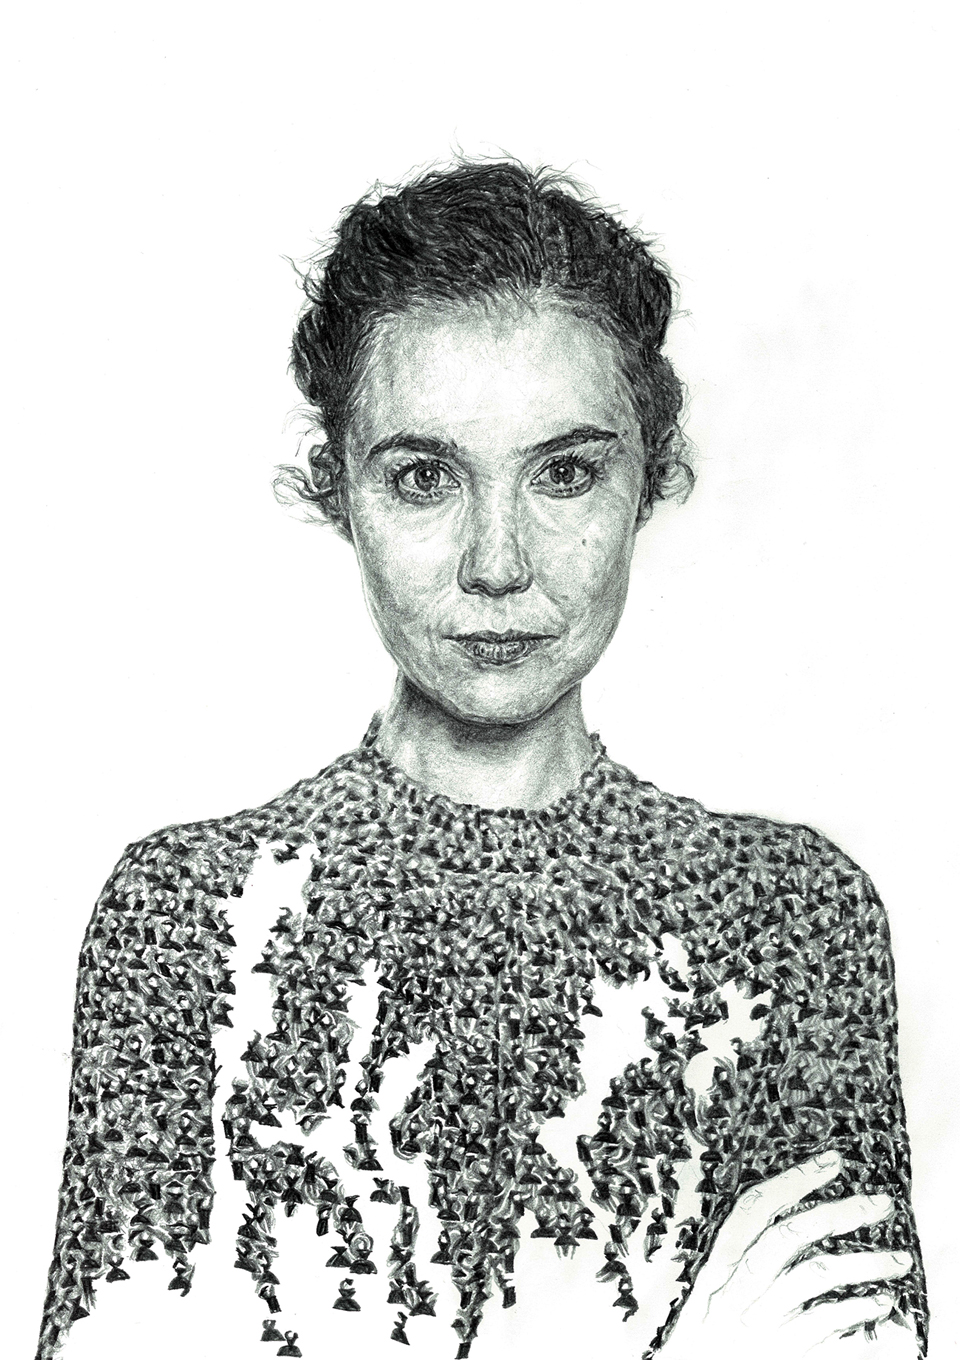 Hand-drawn unfinished portrait illustration of musician Lisa Hannigan as part of a solo exhibition for the Sounds From A Safe Harbour festival in Cork city Ireland, 2017 using pen and pencil by Irish, Berlin-based artist and illustrator John Rooney